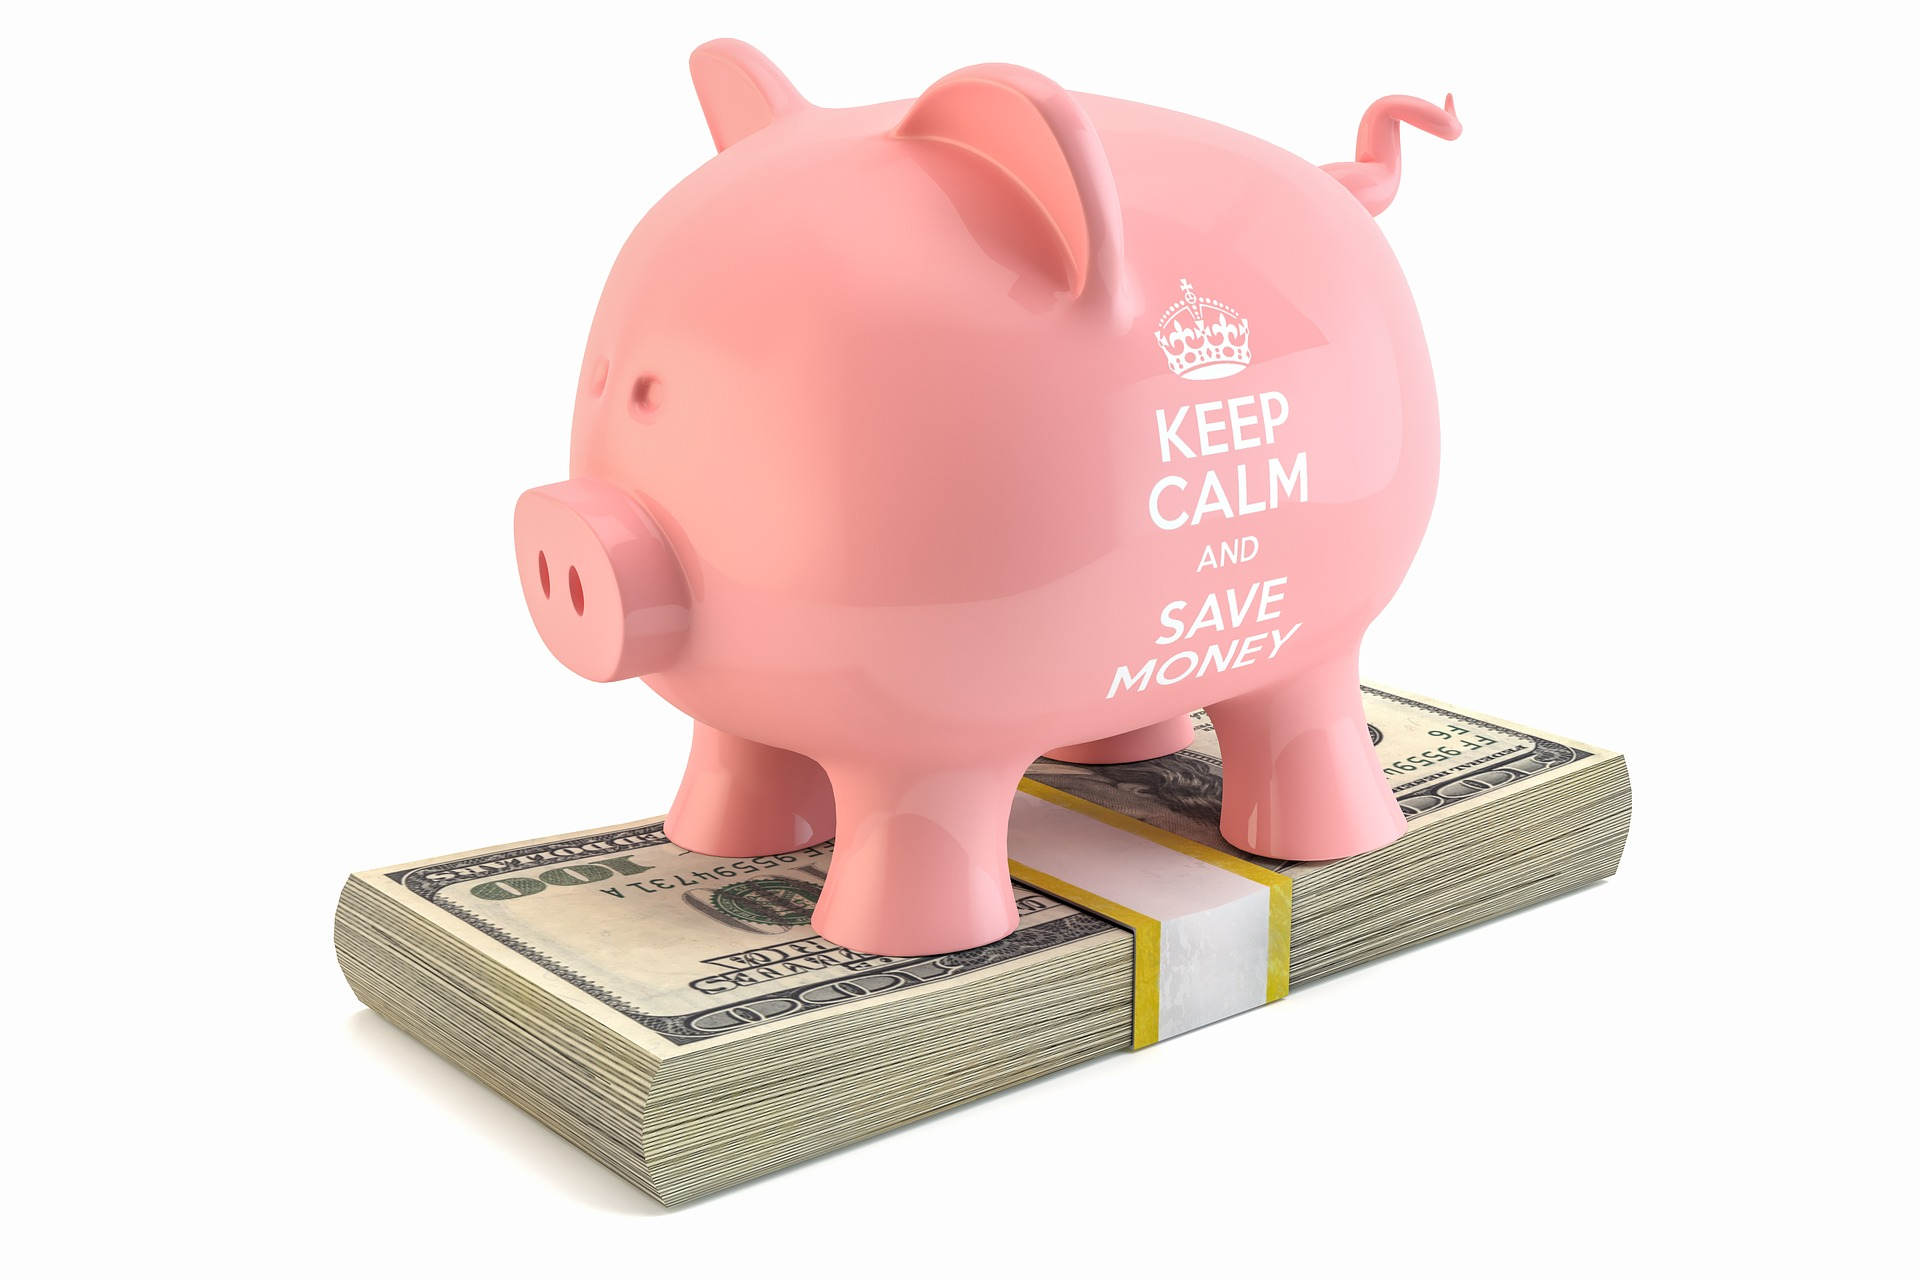 Piggy bank, put money aside, personal finances